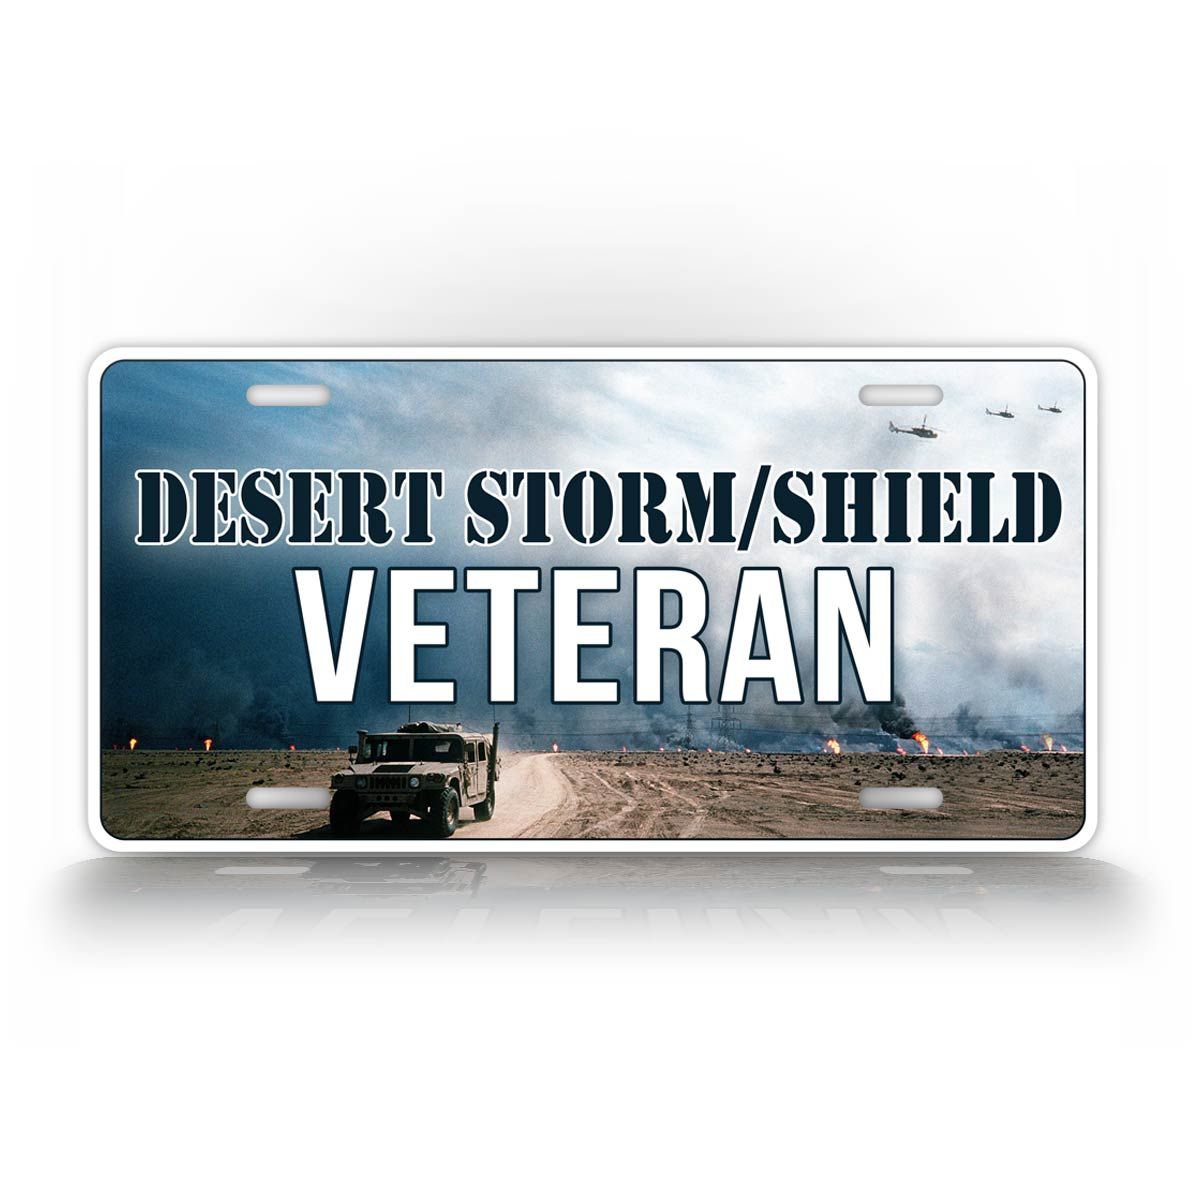 Desert Storm And Desert Shield Veteran License Plate With Humvee In Background